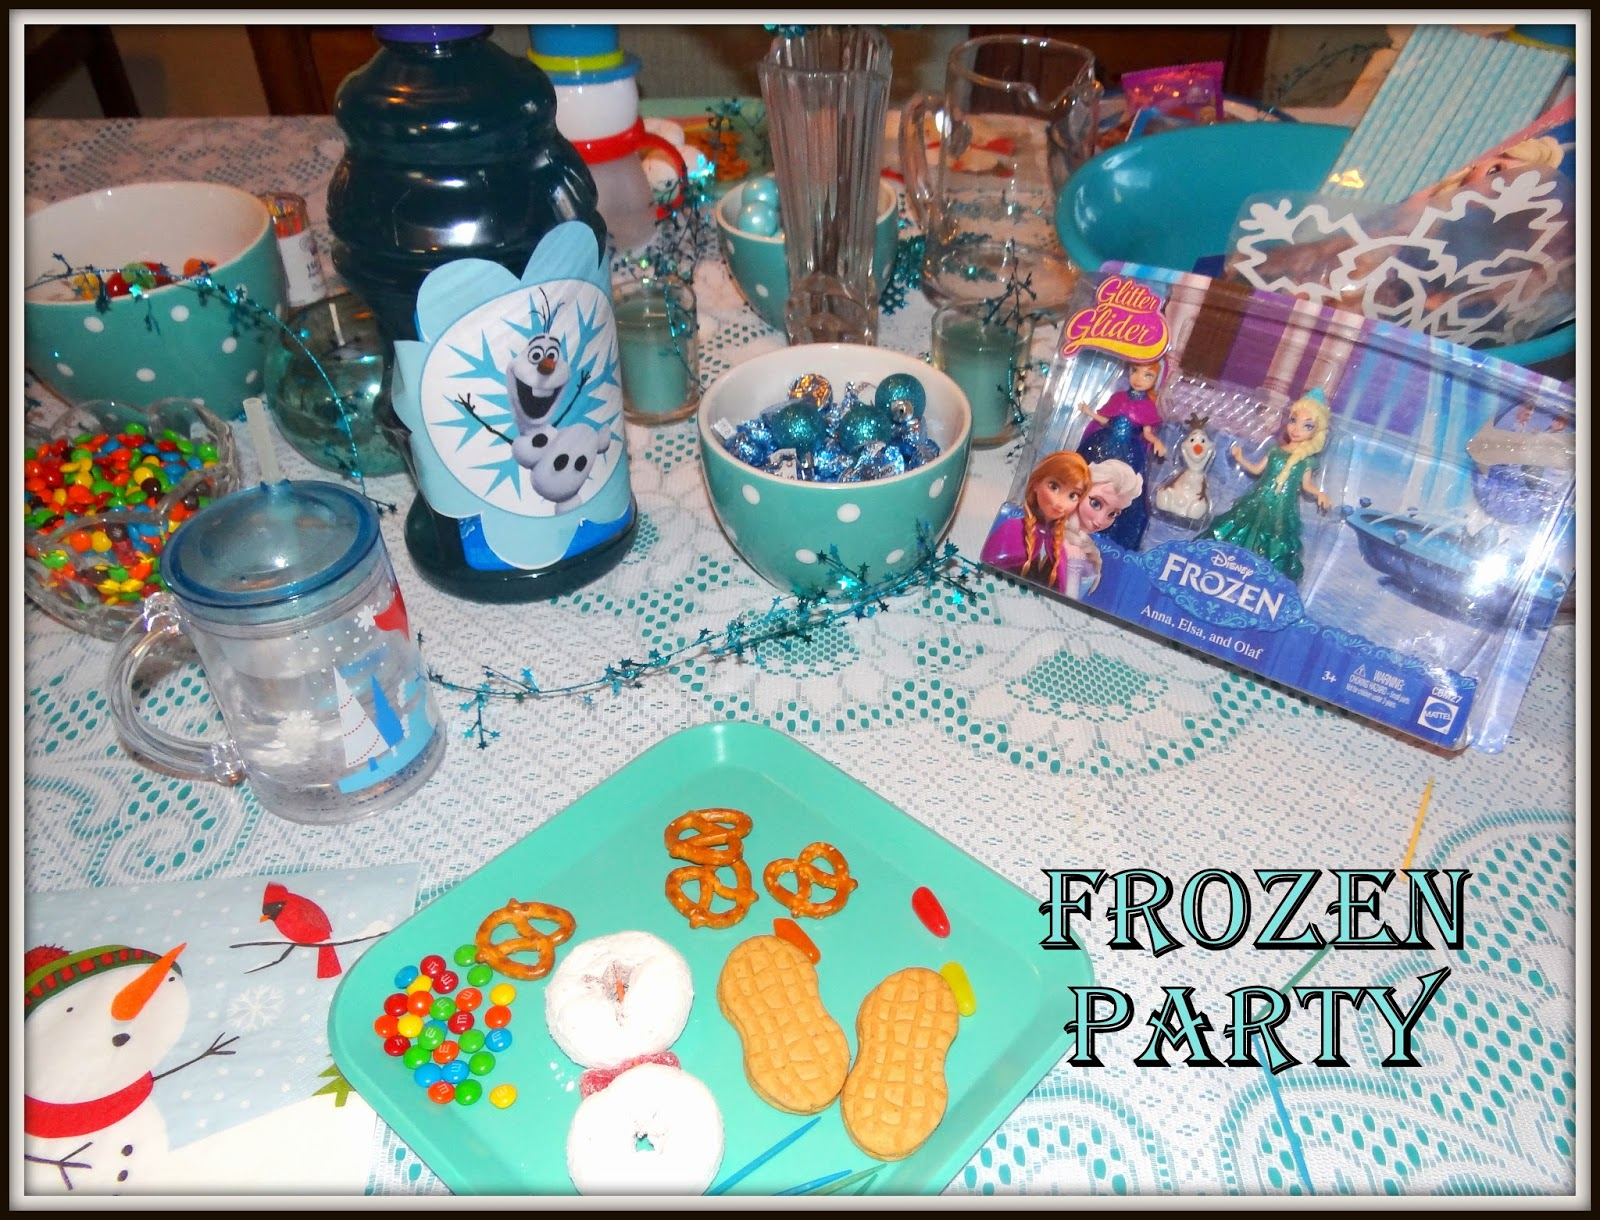 Frozen 2 Olaf Birthday Party Favors and Goodie Bag Fillers Pack For 12 With Frozen 2 Pencils Olaf Finger Puppets Olaf Goodie Bags Frozen Tattoos and Frozen Inspired Pin Olaf Stickers